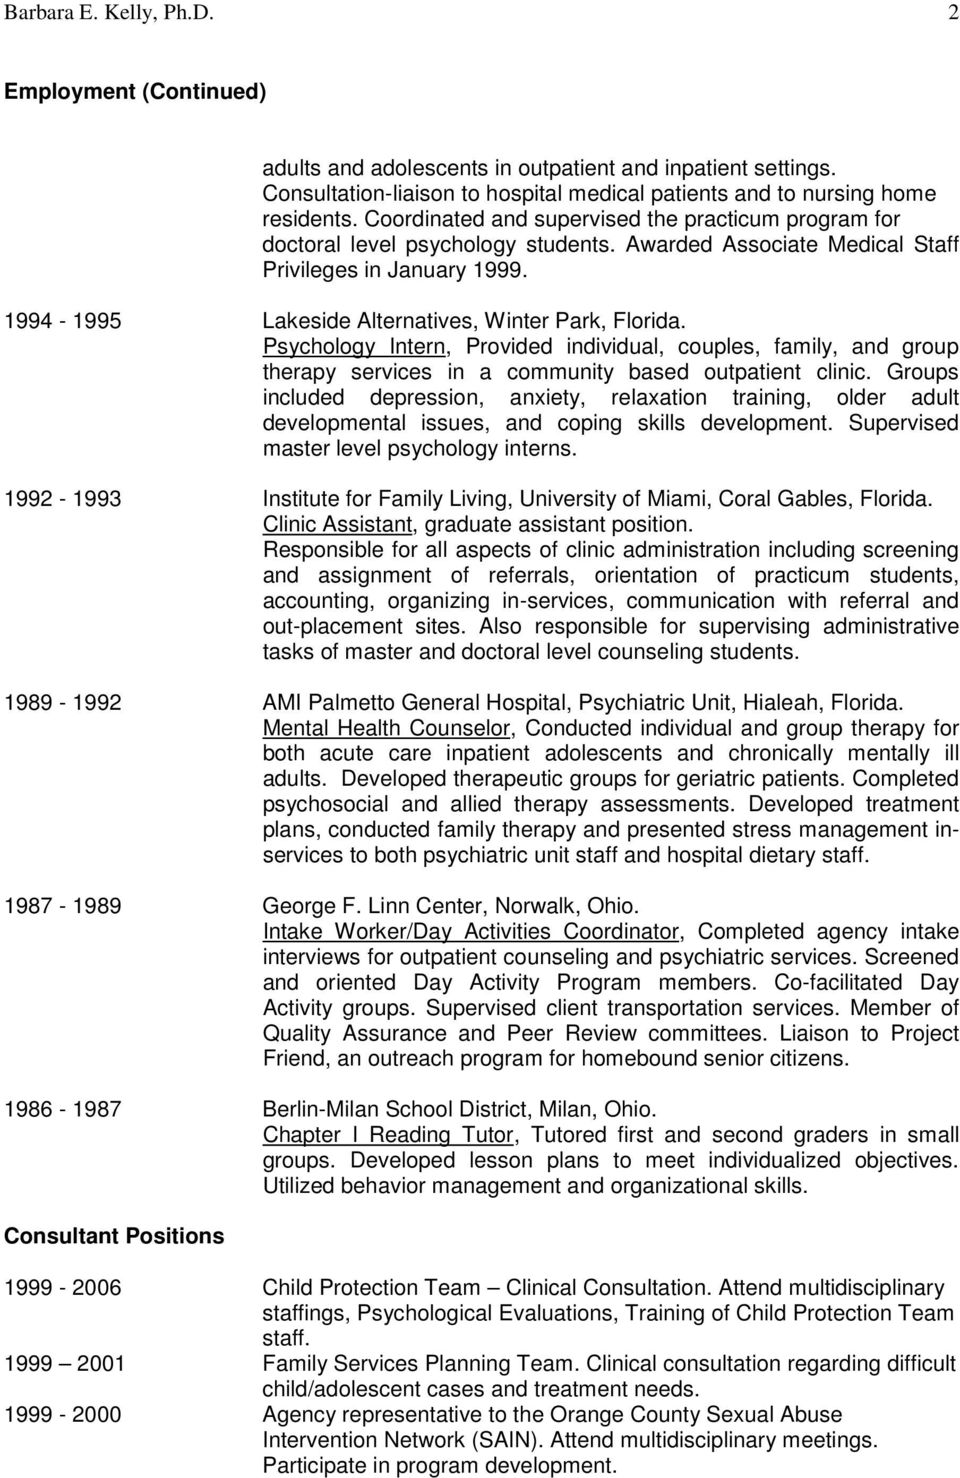 1994-1995 Lakeside Alternatives, Winter Park, Florida. Psychology Intern, Provided individual, couples, family, and group therapy services in a community based outpatient clinic.